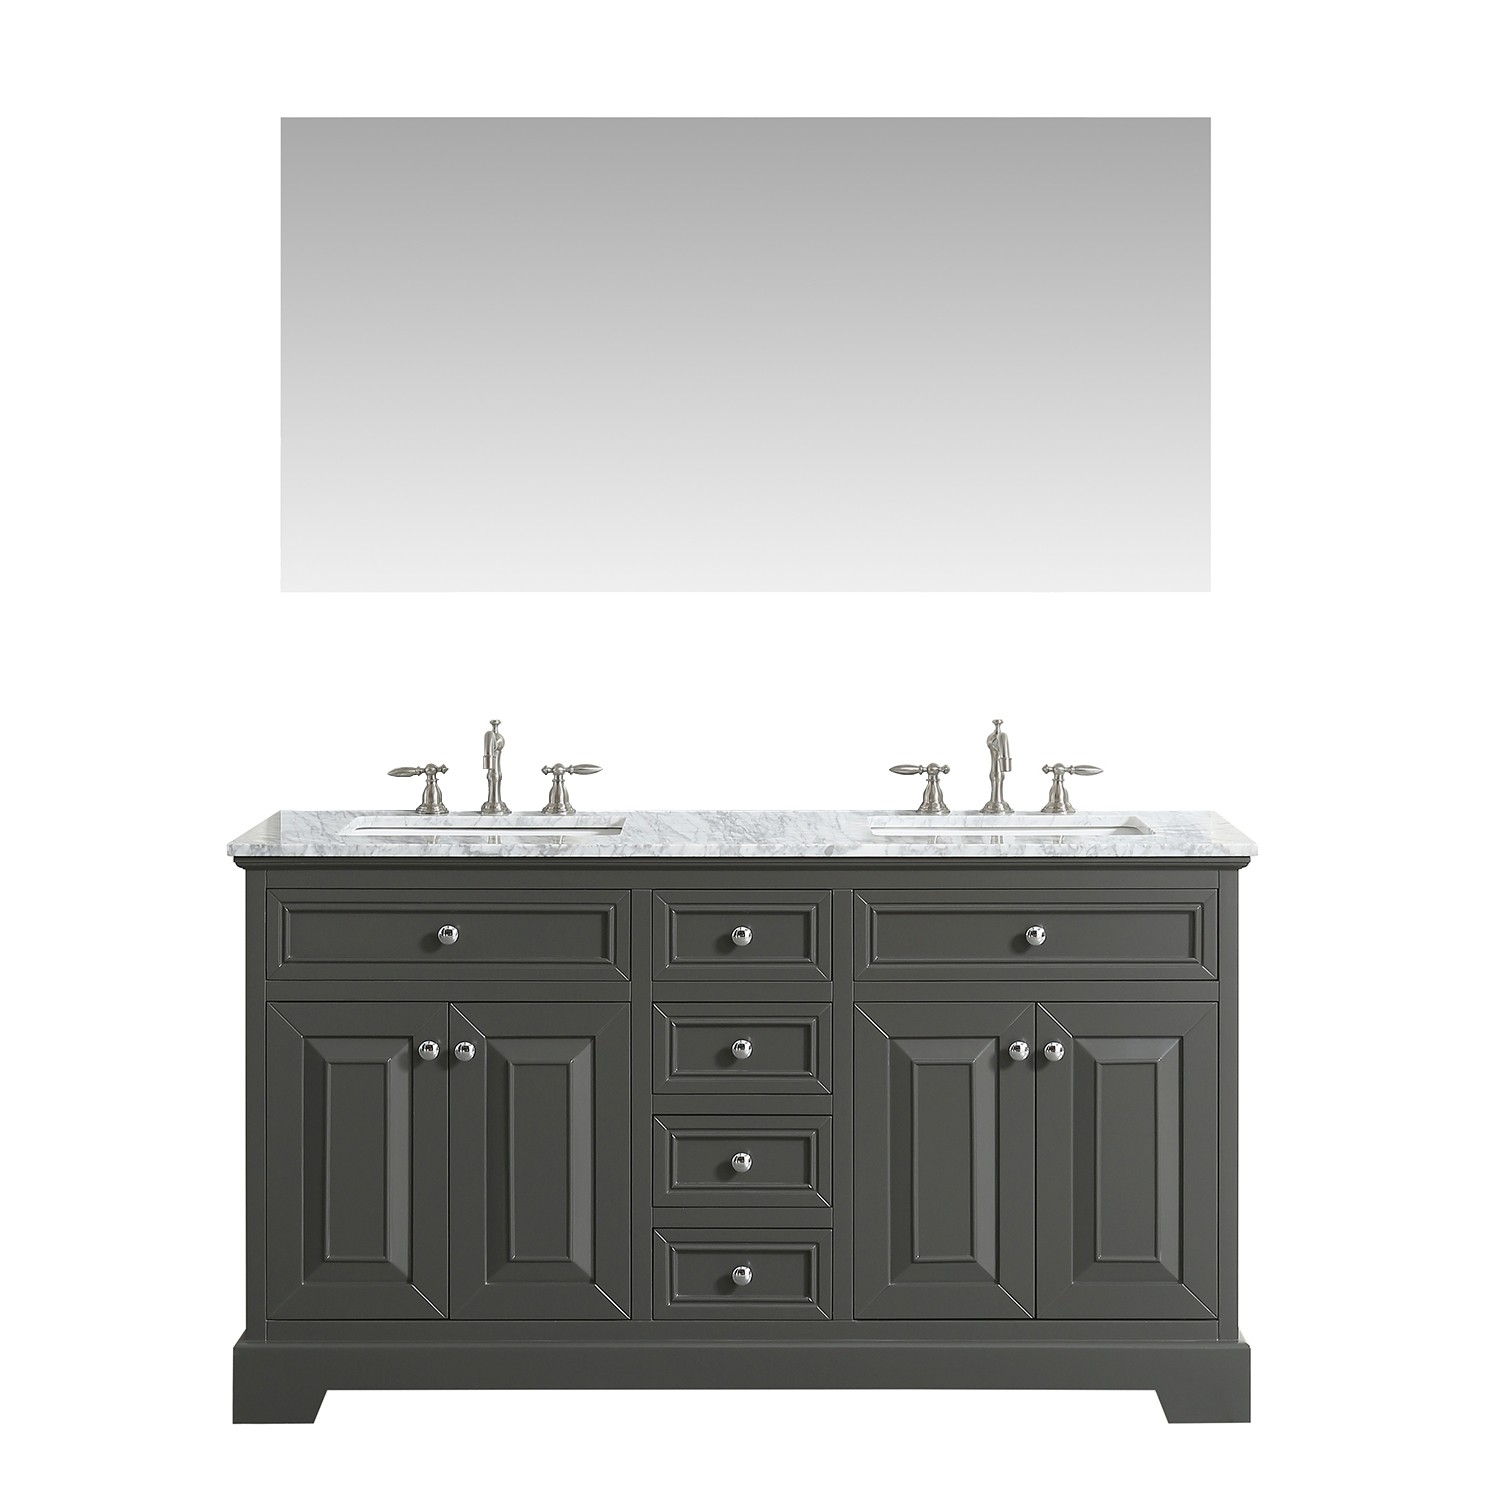 Gray Double Bathroom Vanity With White Carrara Marble Top And Undermount Porcelain Sinks